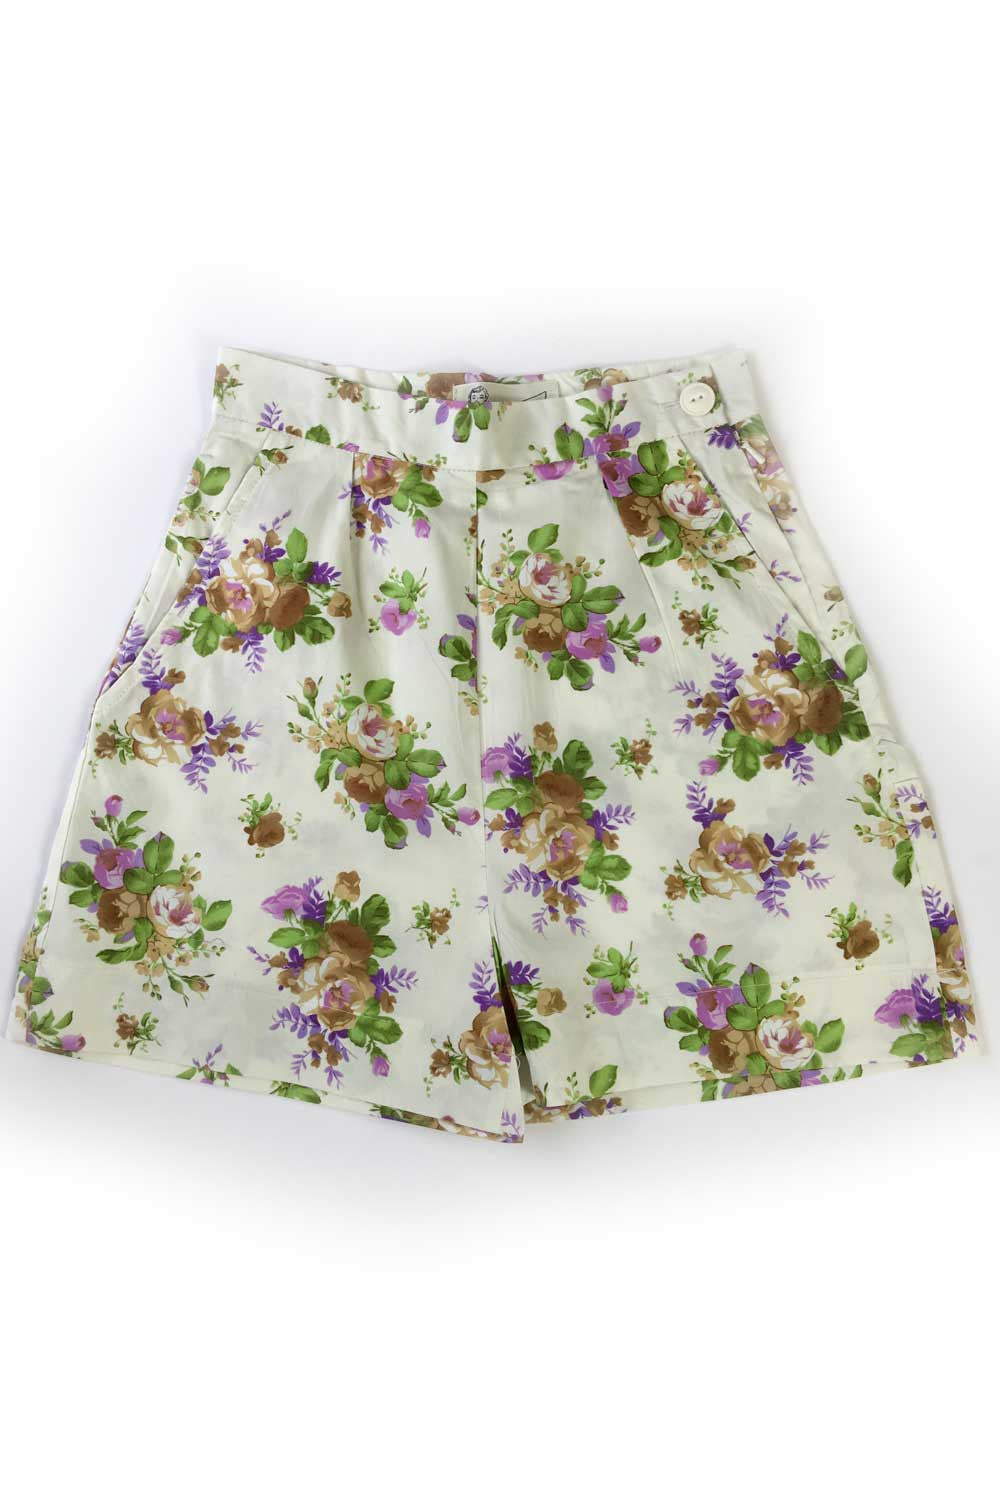 The Printed Shorts - Cream Purple Flowers